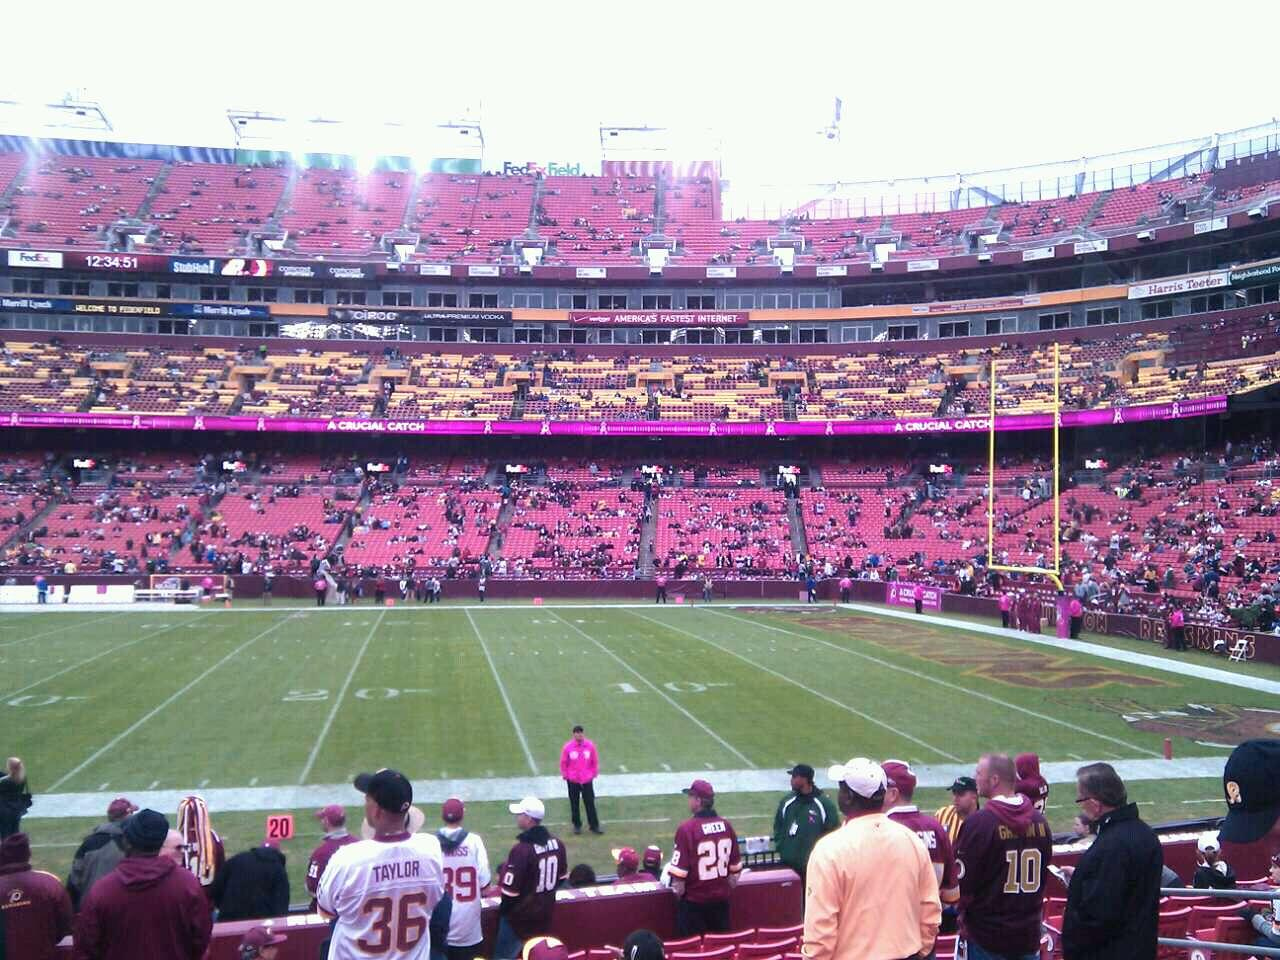 FedEx Field Section 140 Row 13 Seat 10